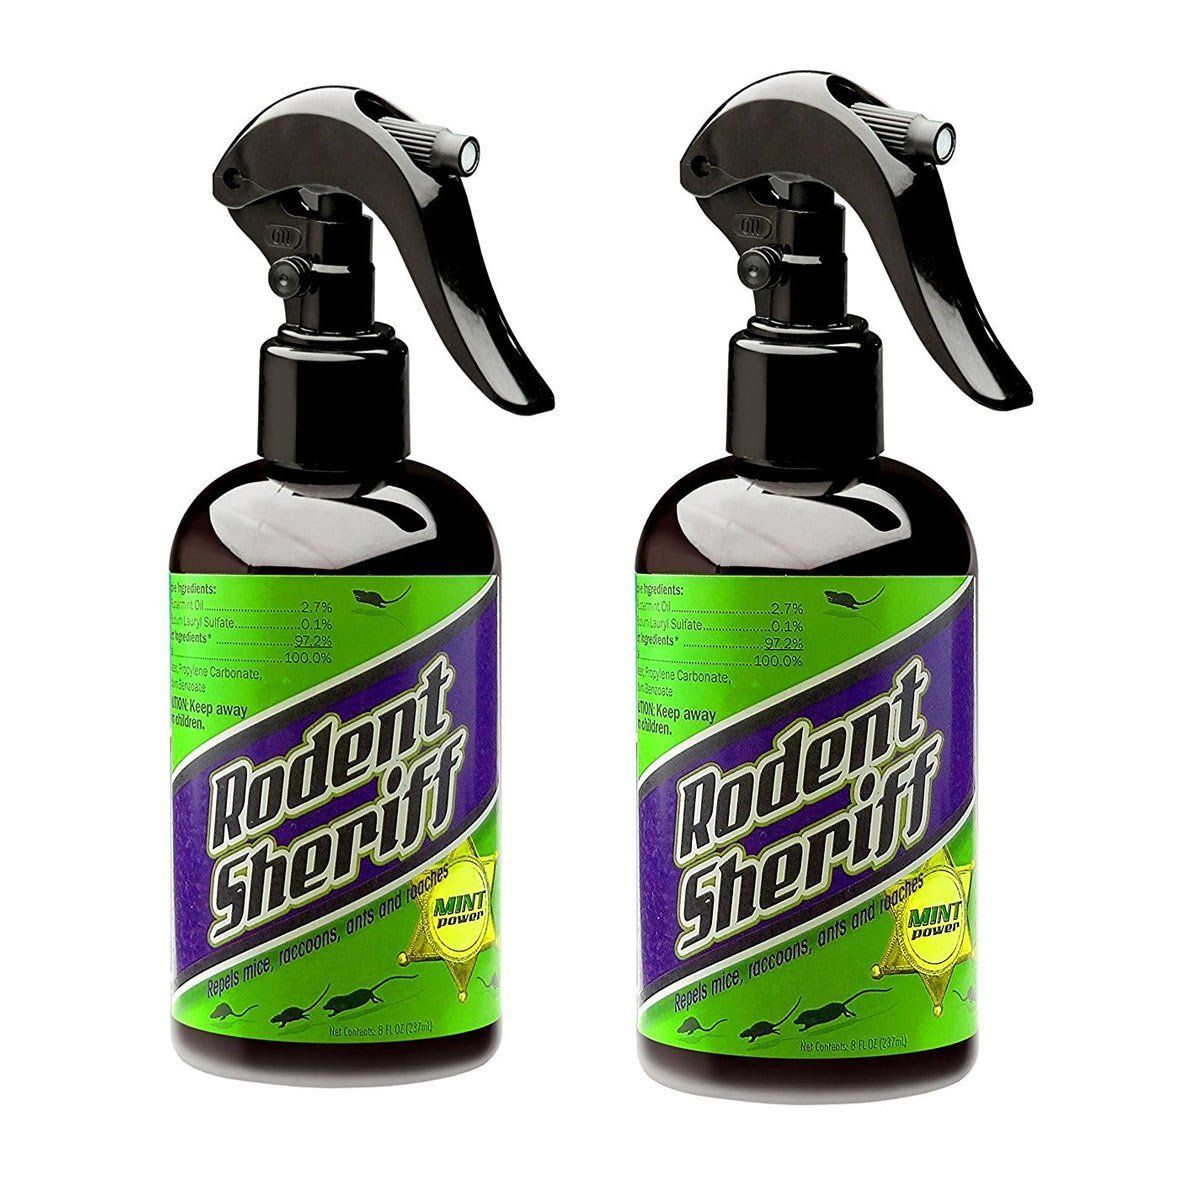 Ezr Kitchen Degreaser Refurbishing Cabinets 10 Infomercial Products That Actually Improve Your Home Pest